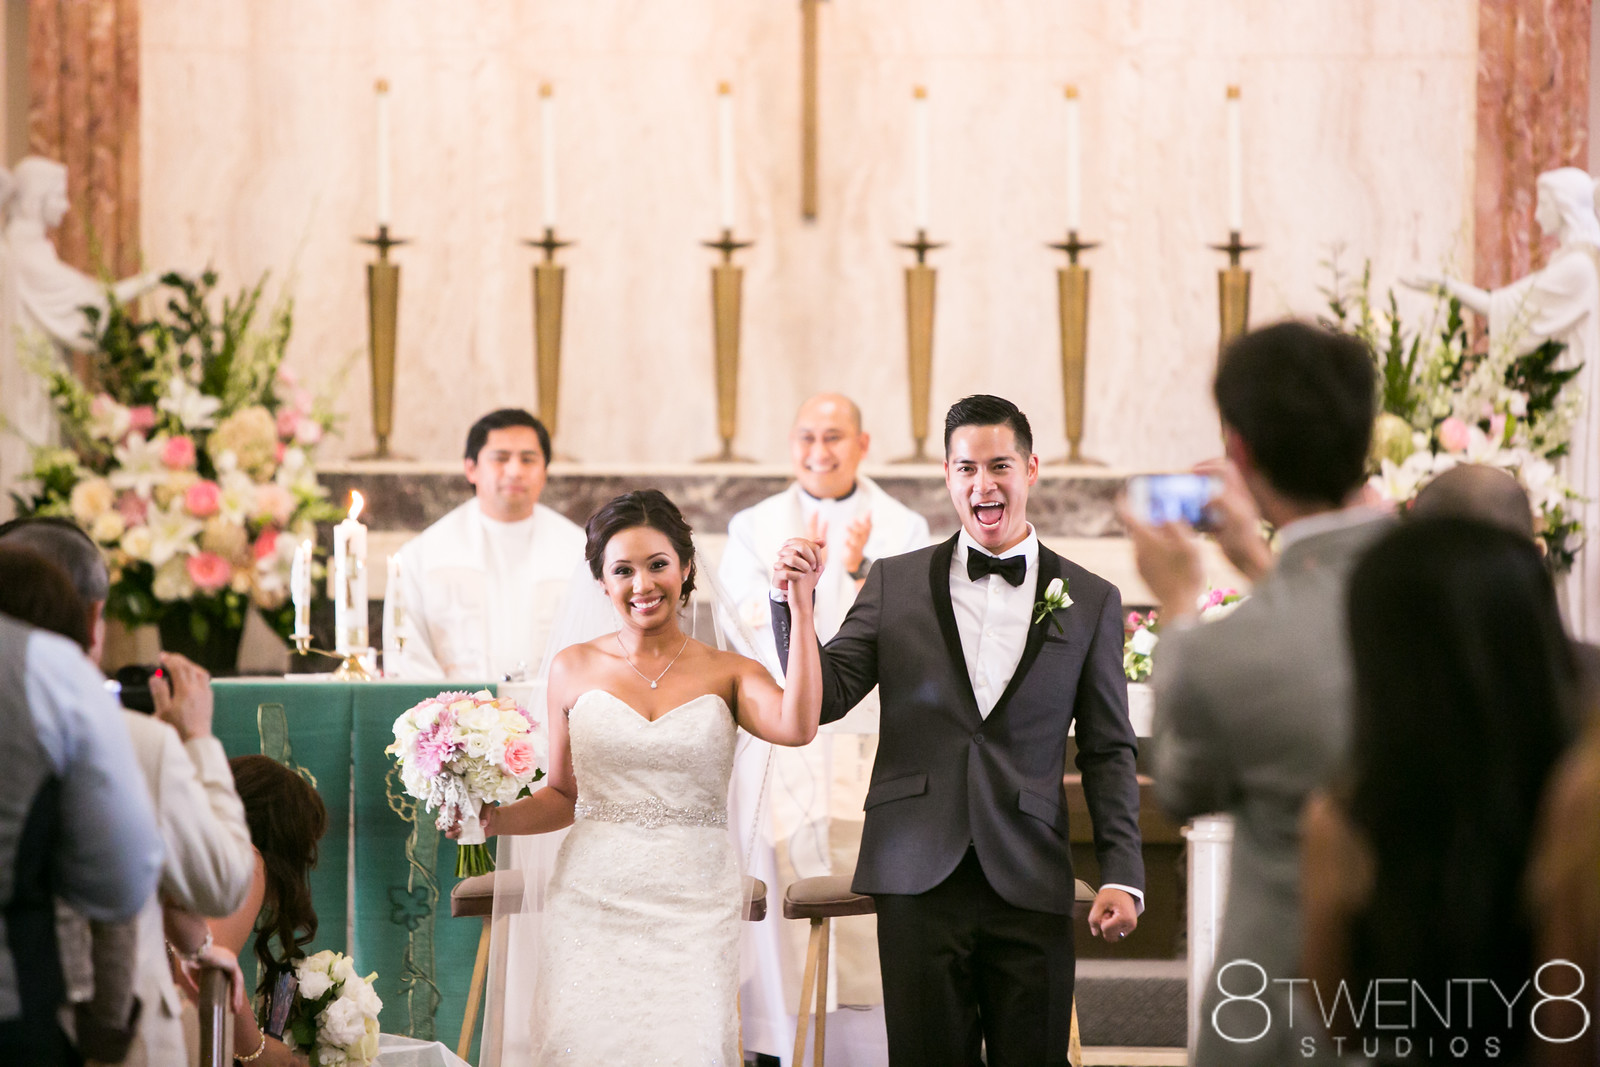 Top 10 Party Songs For Your Wedding Mix Tape Create the soundtrack to your big day and the biggest celebration of your lives with party song choices that